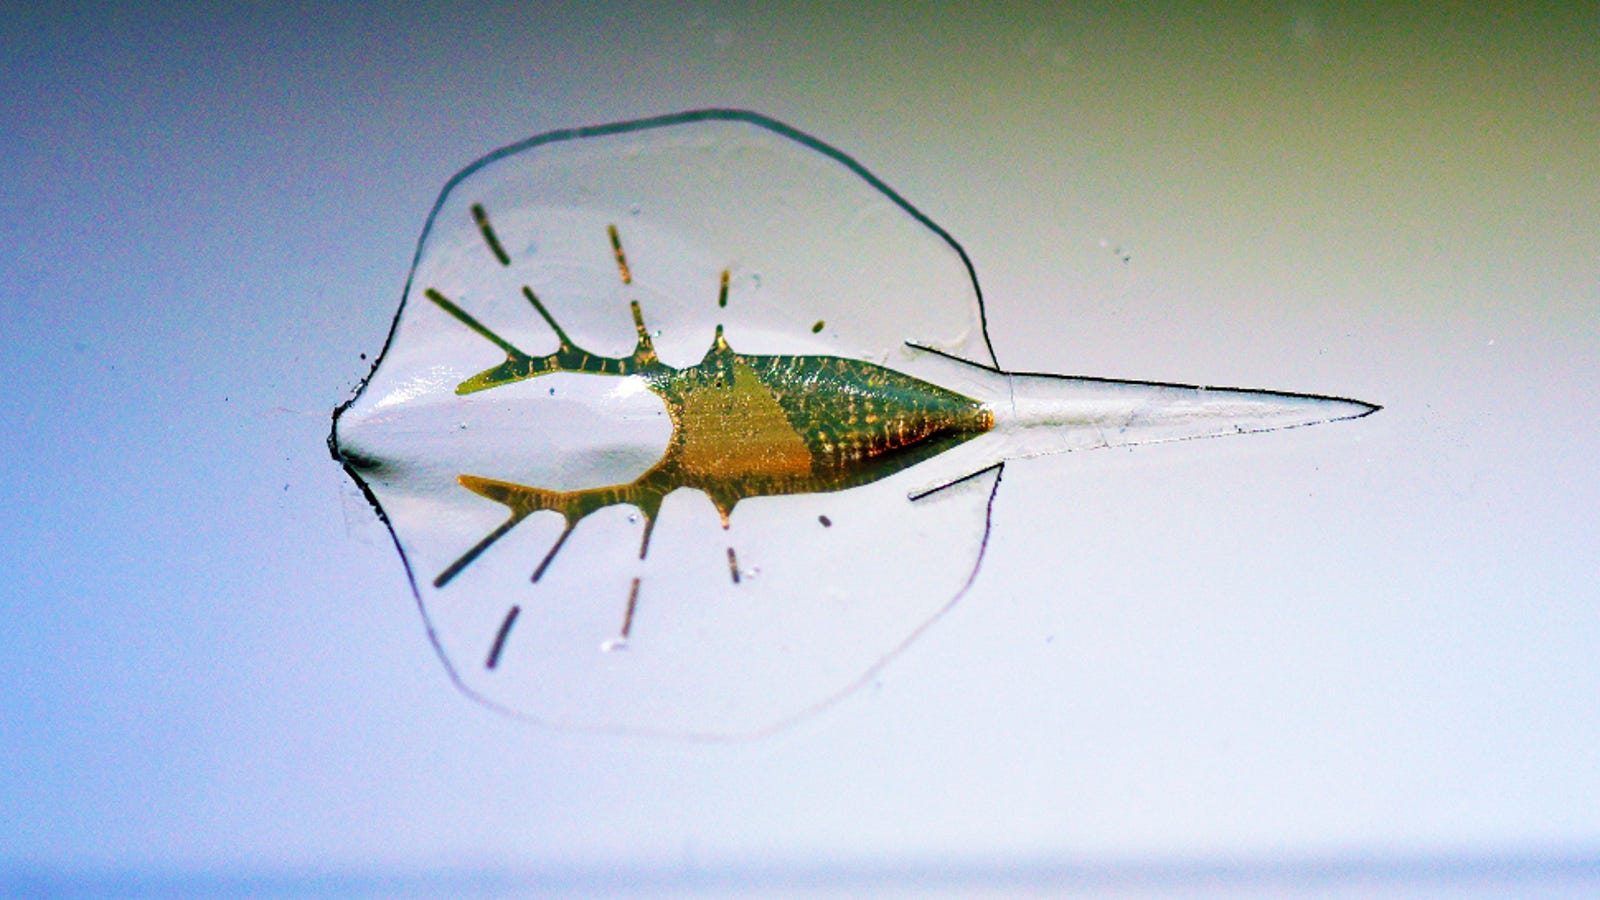 This Cyborg Stingray Is the Coolest Thing You'll See All Day